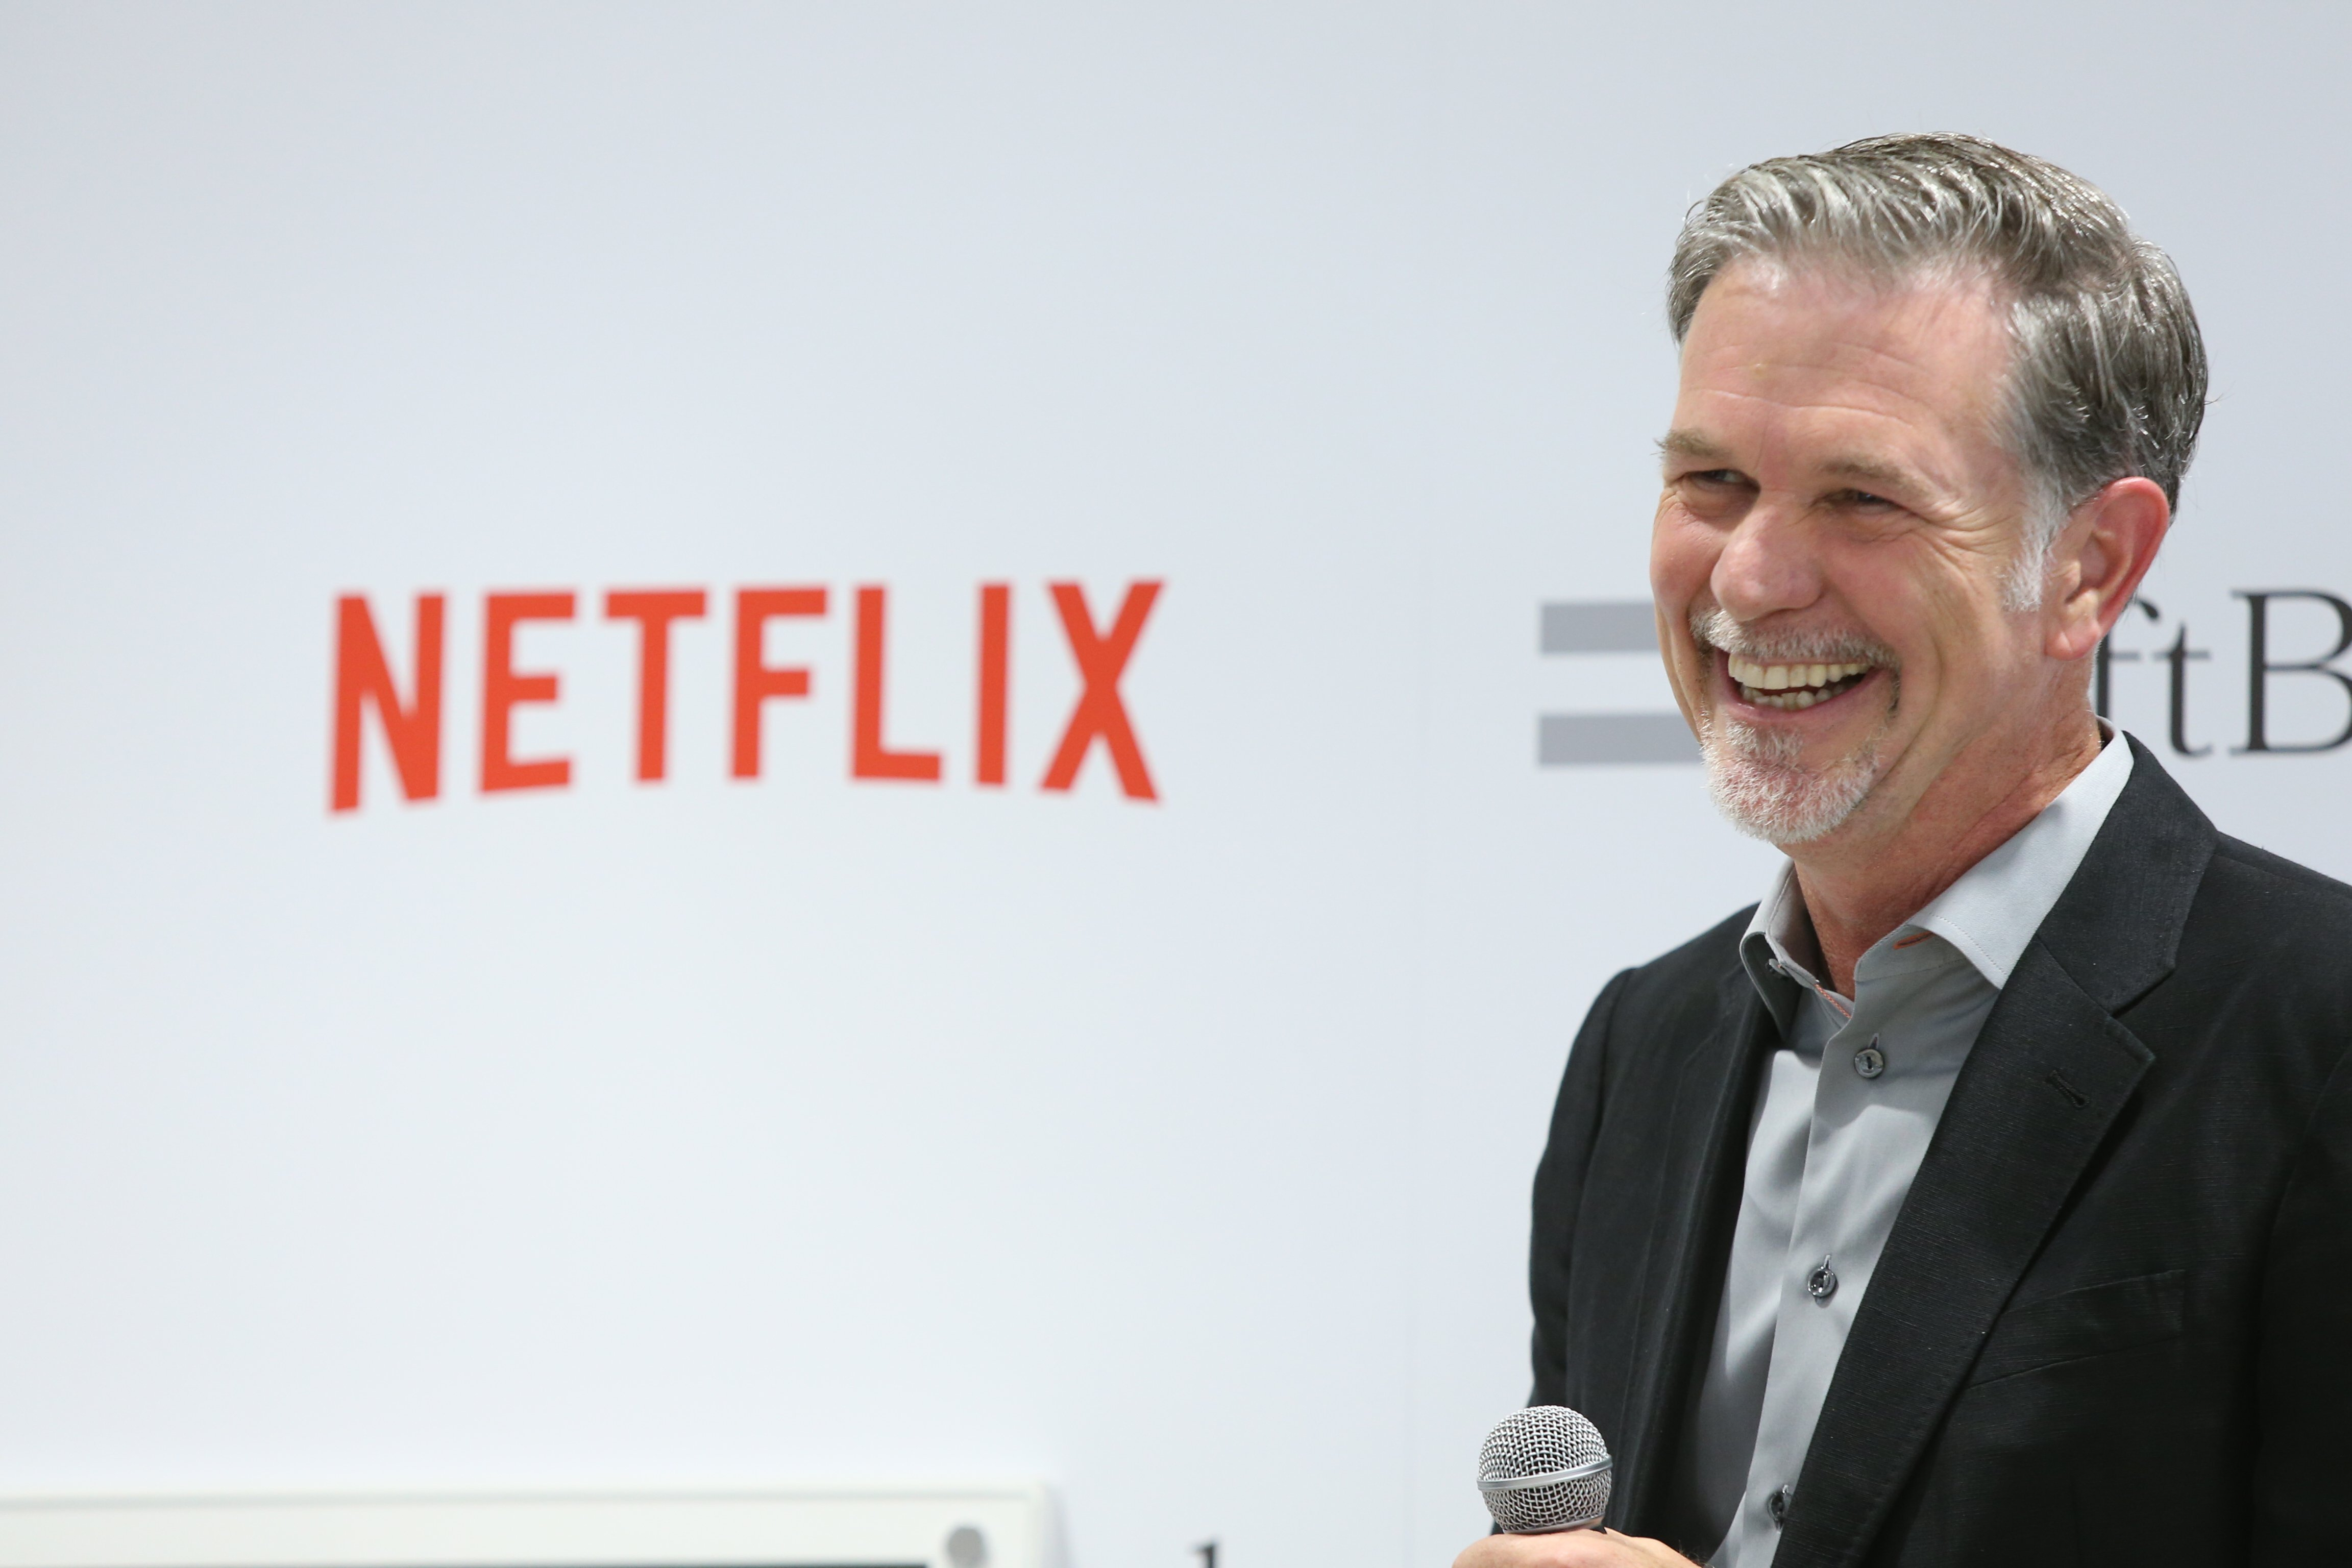 Netflix's Cash Bonuses Become Salary Thanks to New Tax Plan